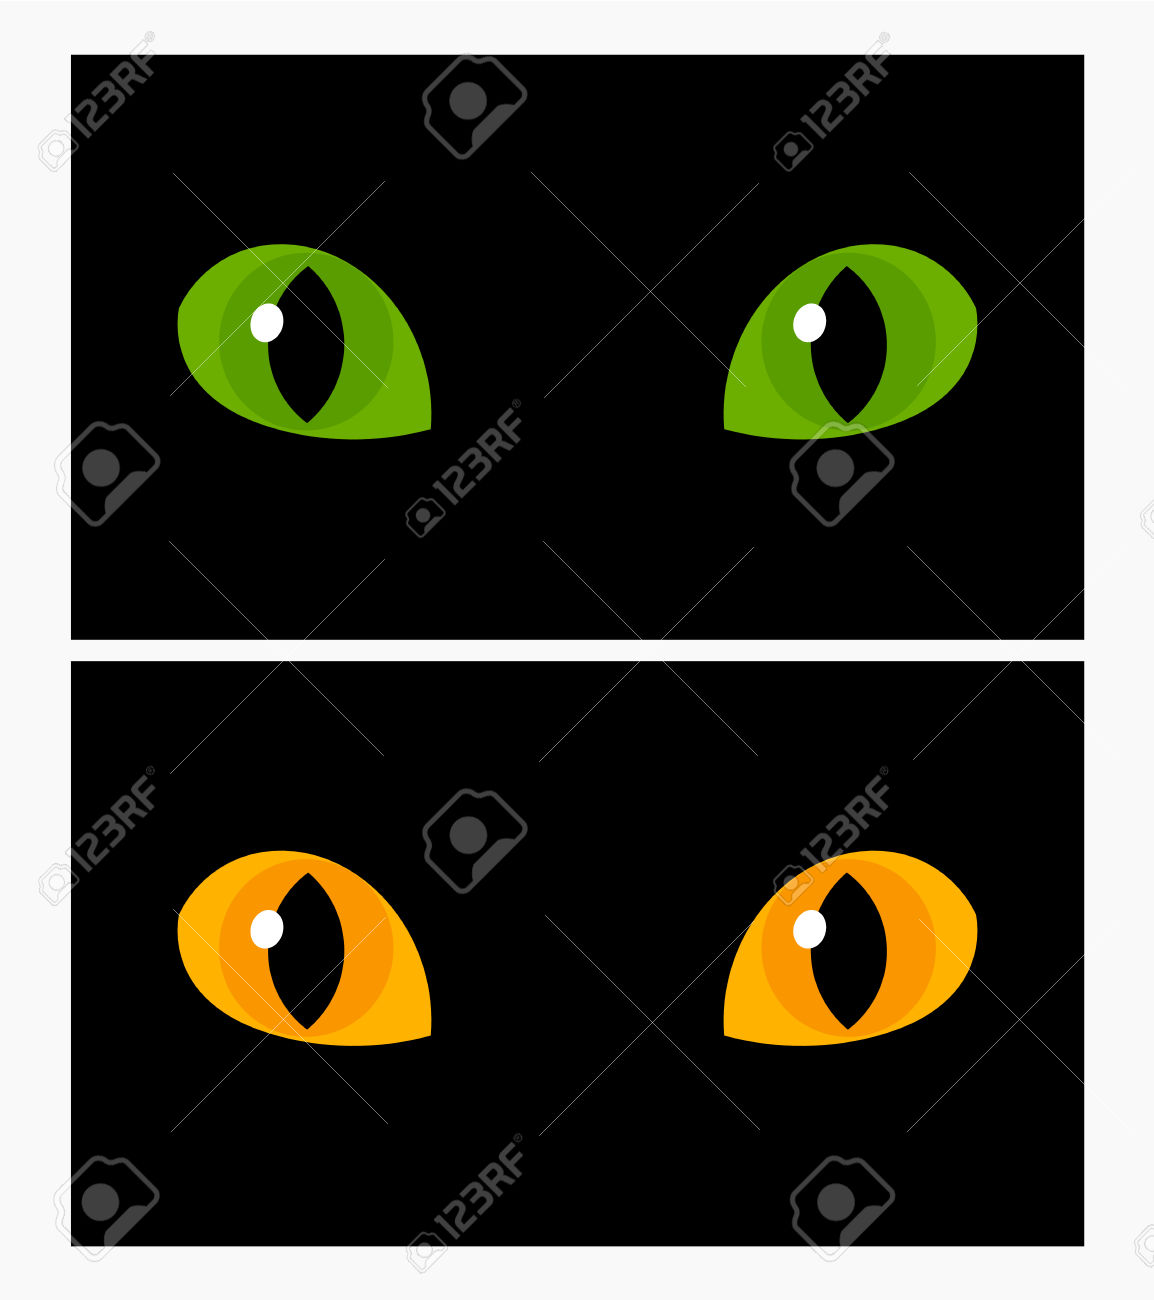 Yellow Eyes clipart #4, Download drawings